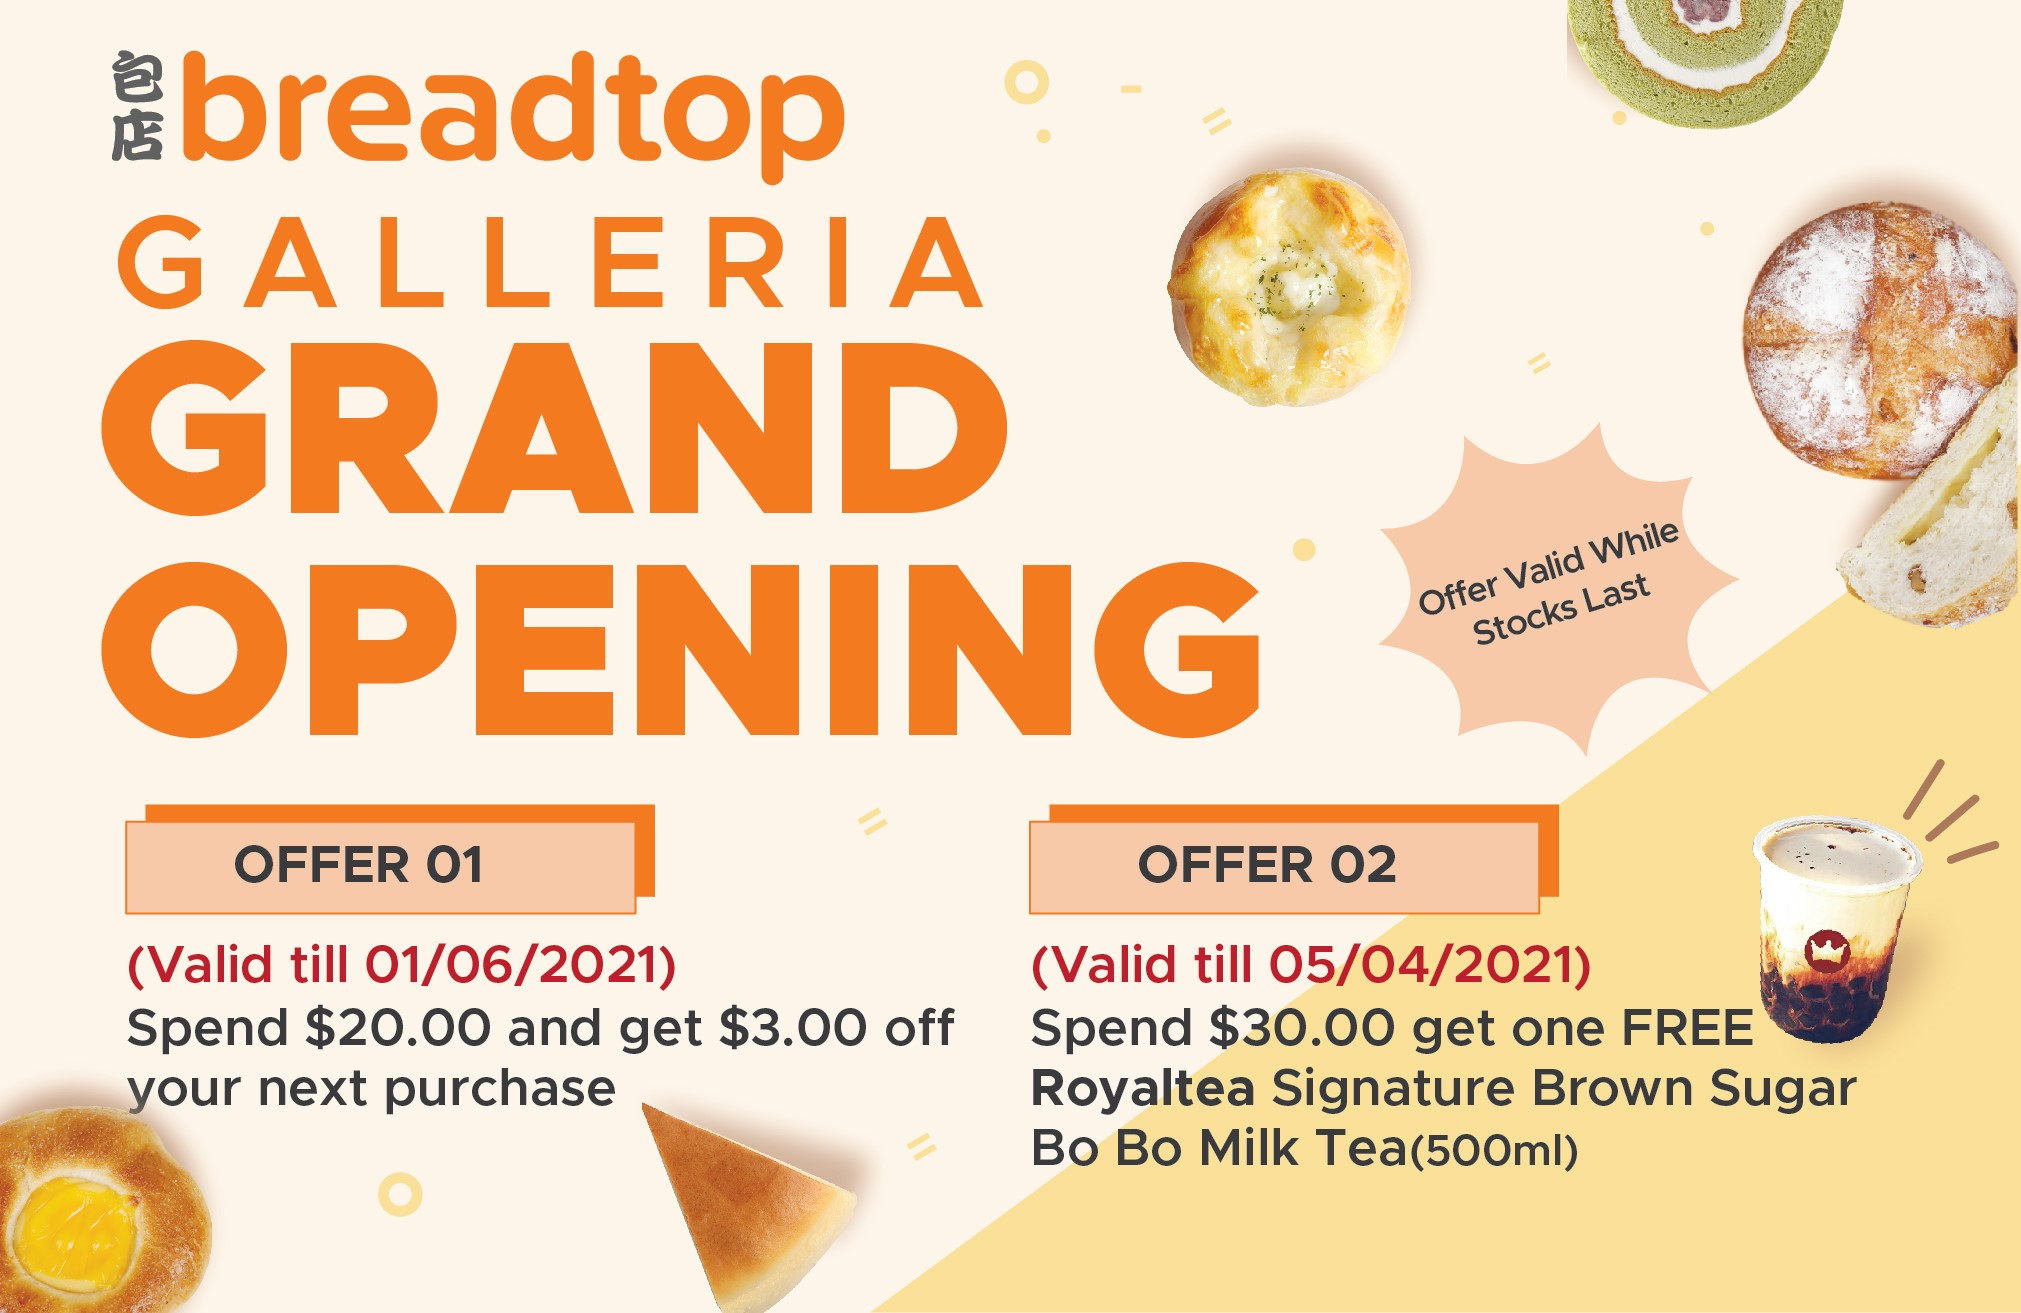 breadtop Grand Opening